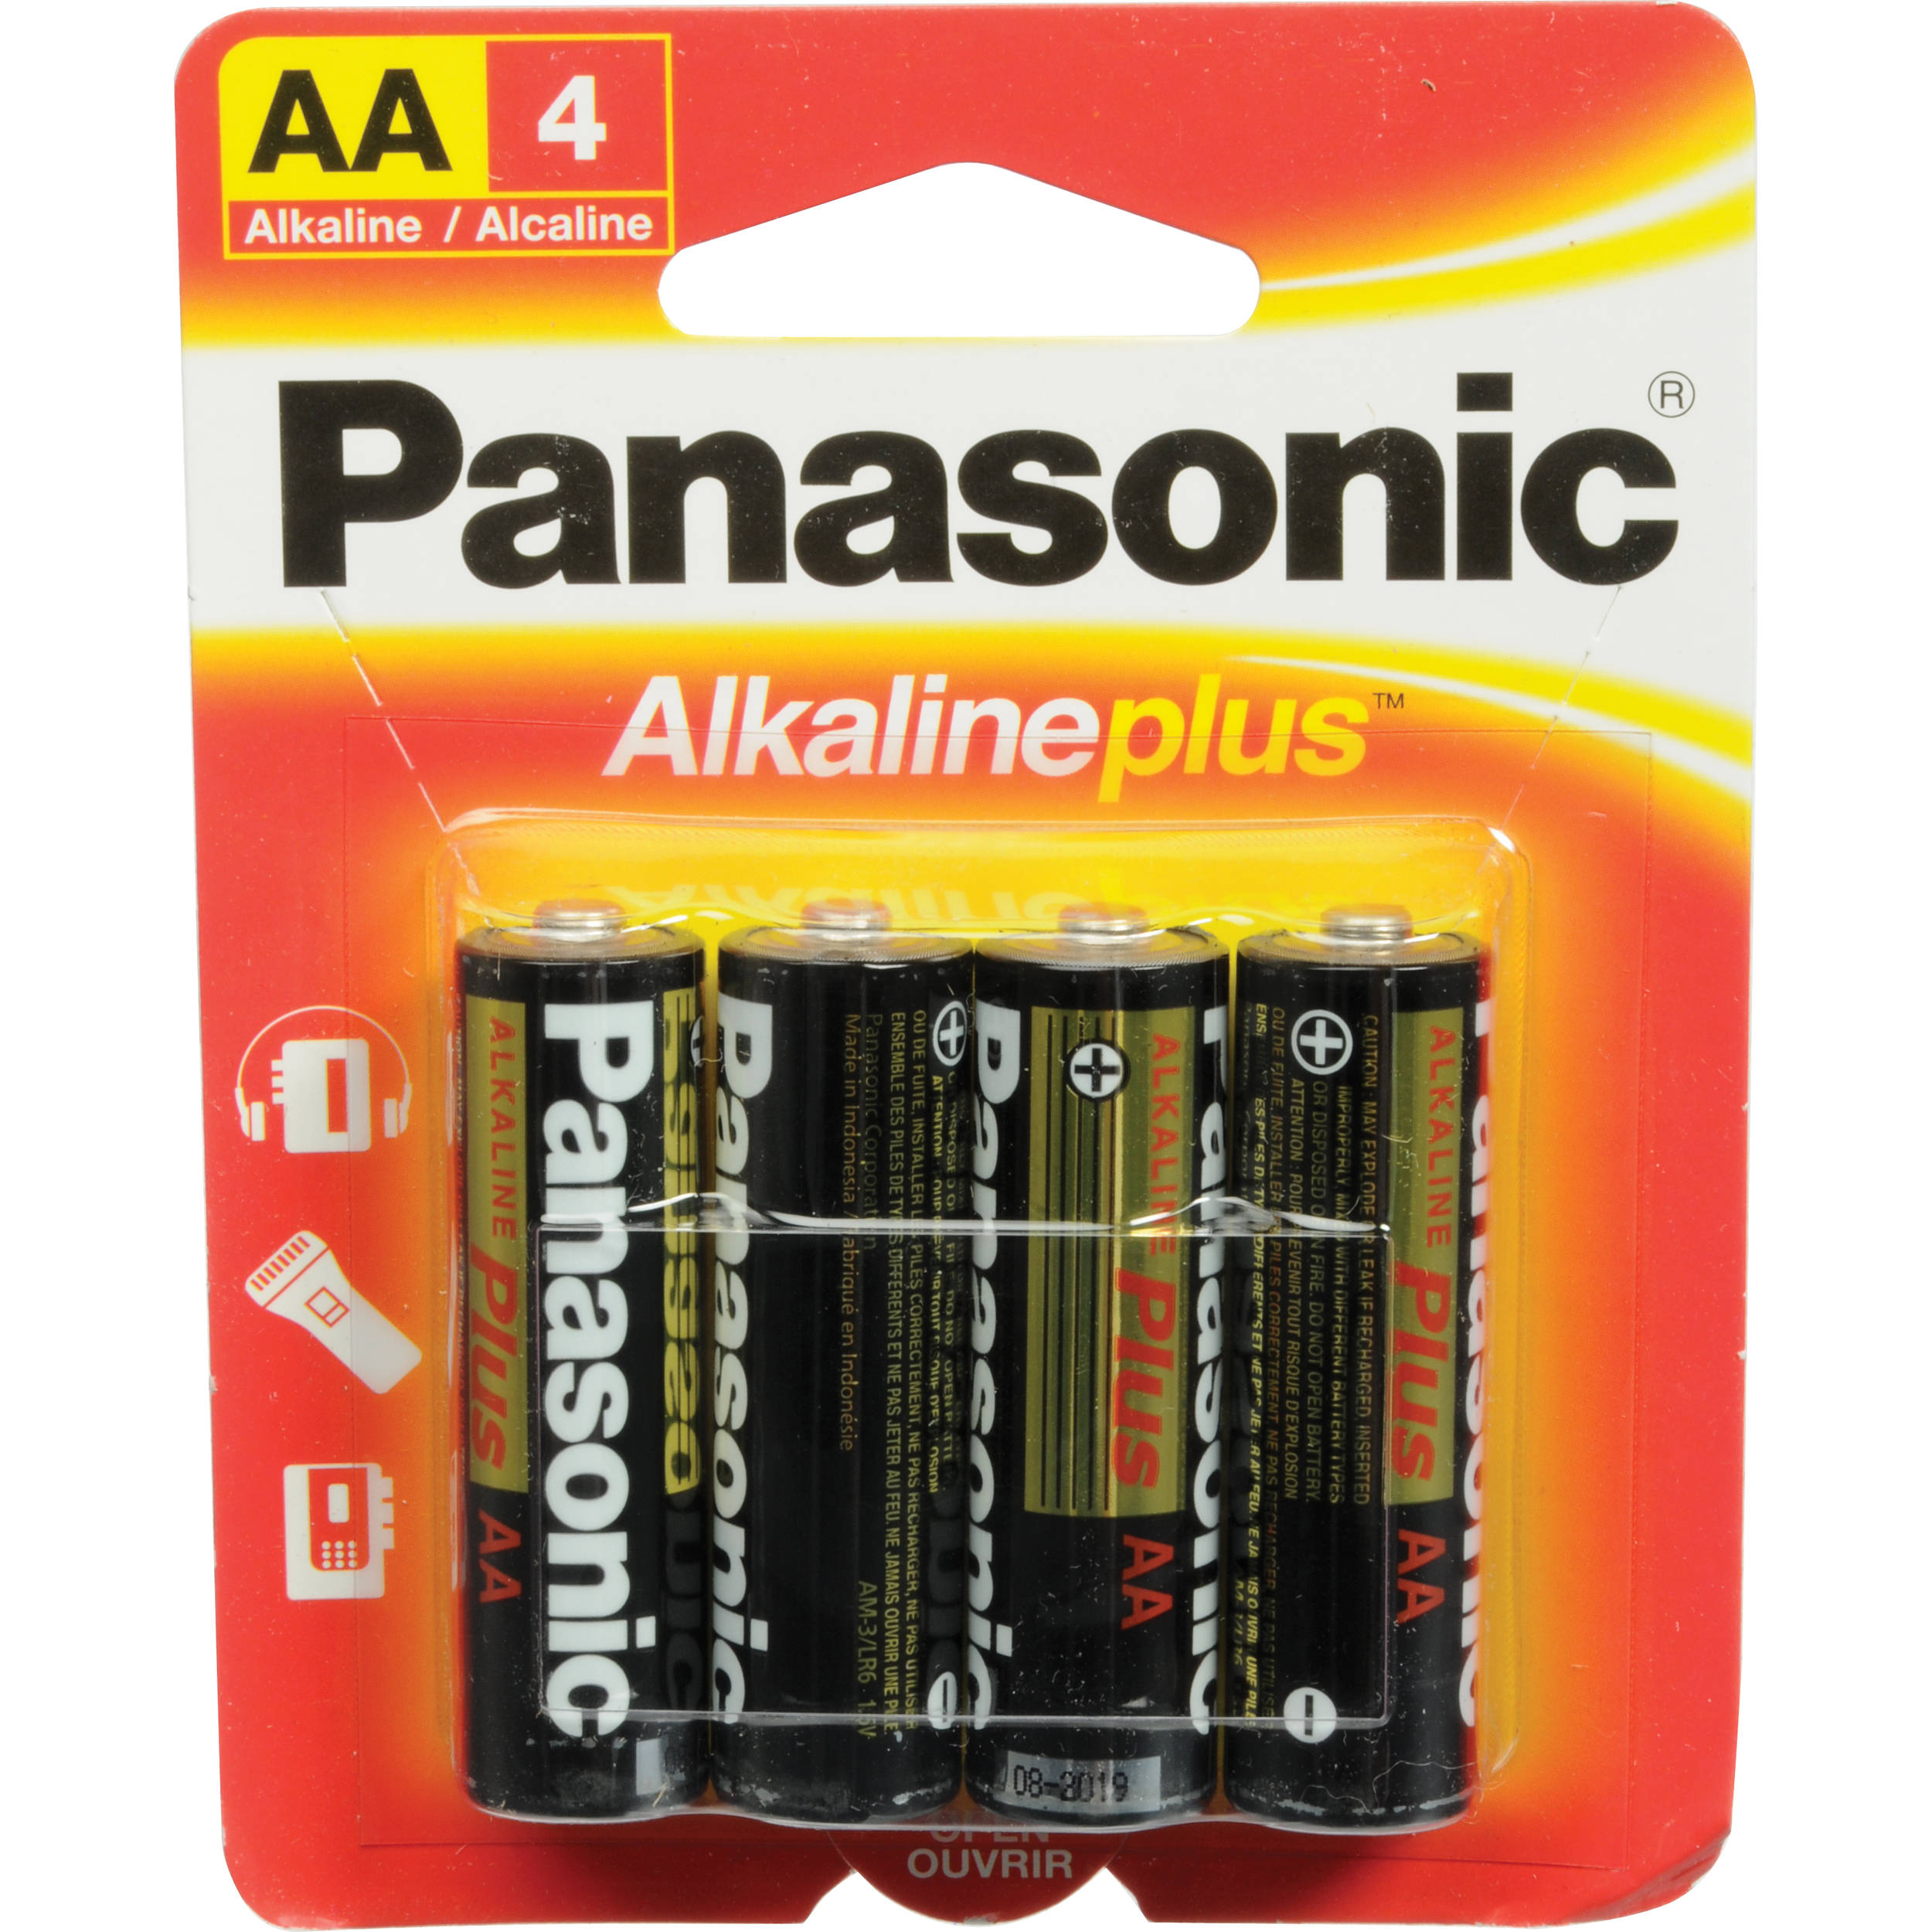 Panasonic AA Alkaline Plus Batteries 15V